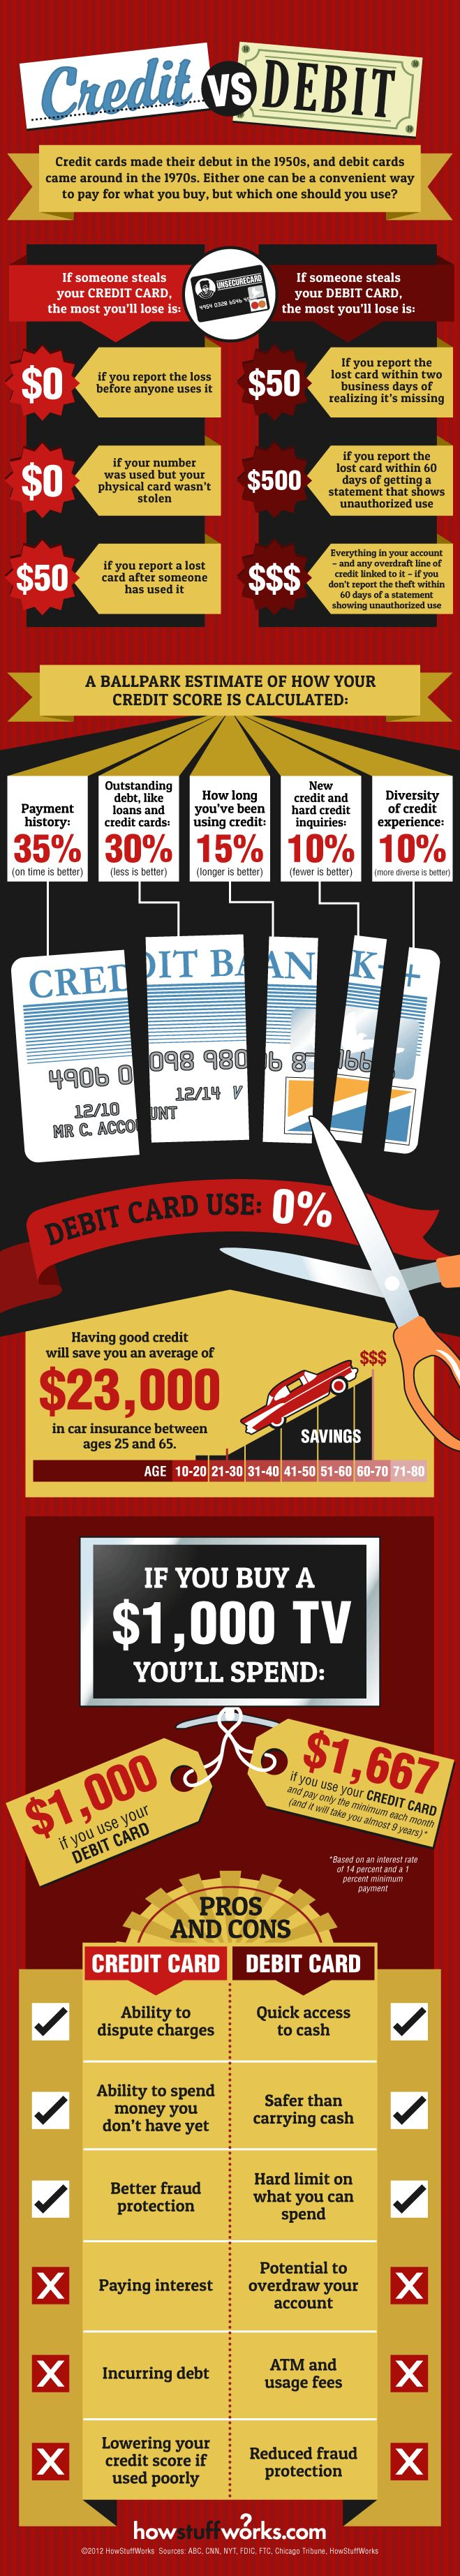 """Credit card vs. Debit card"""